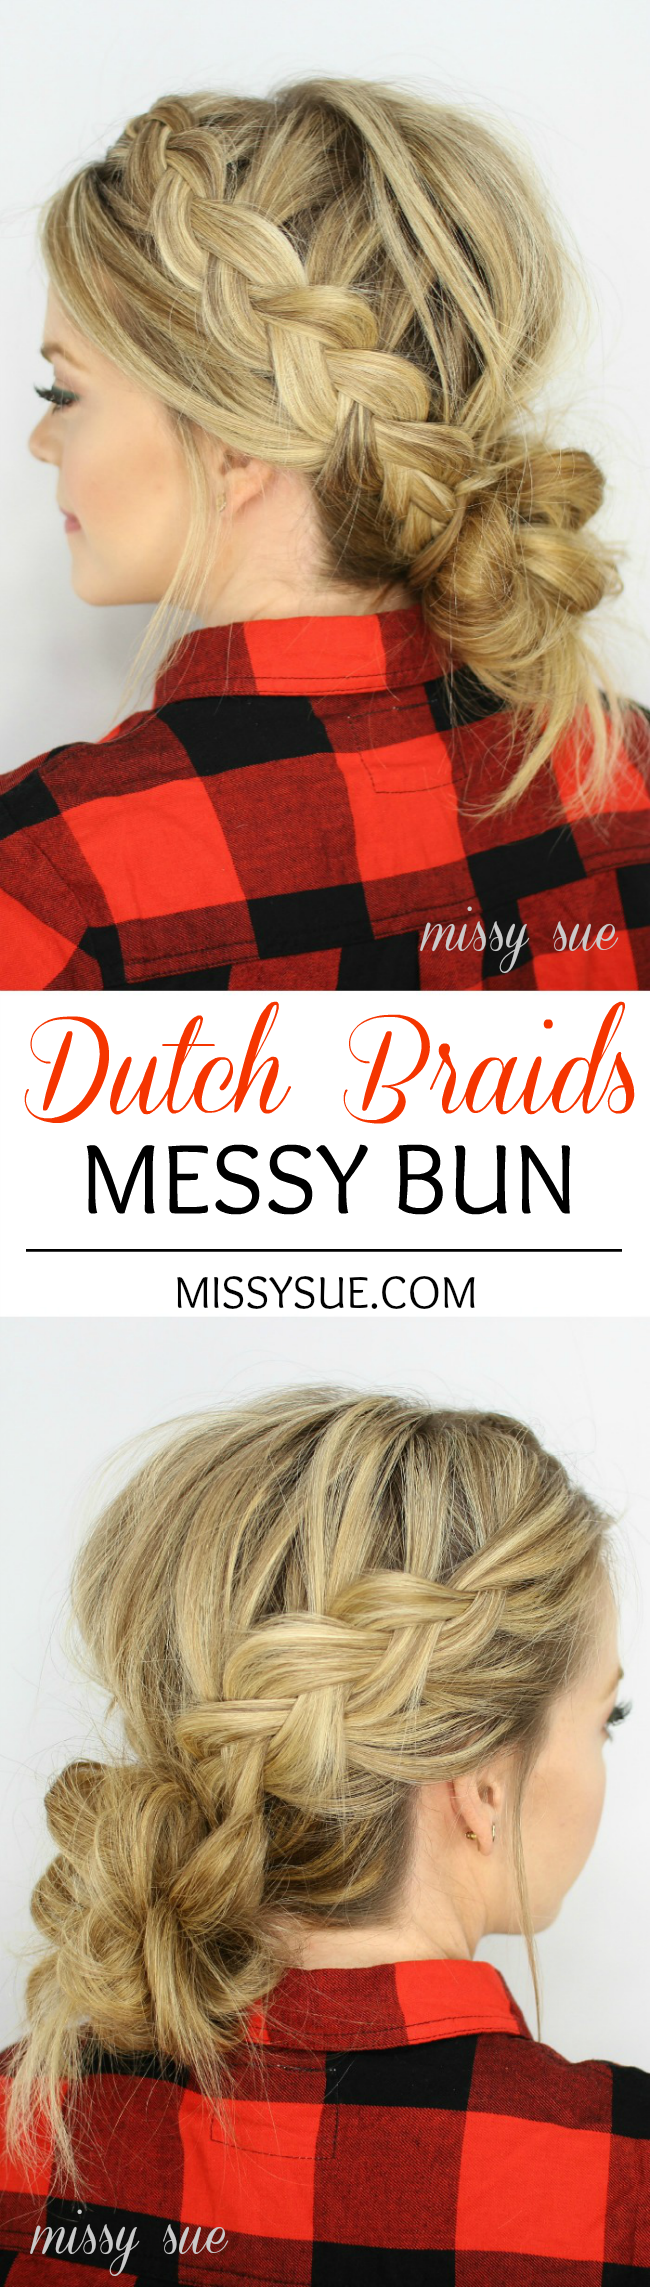 Dutch braidsmessy buns hair pinterest low messy buns dutch